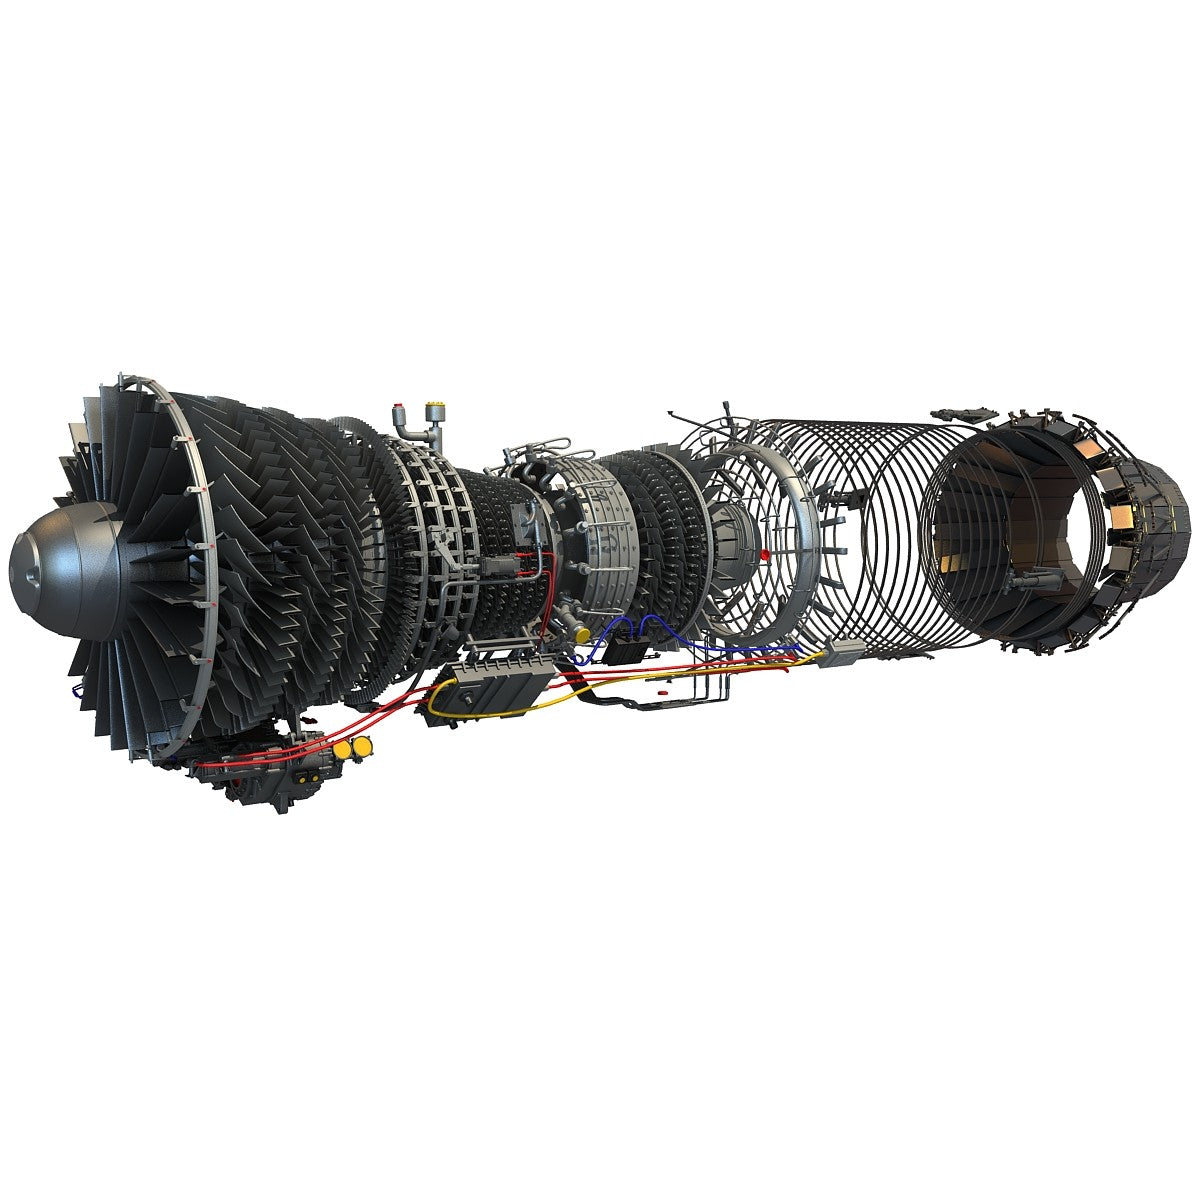 F100 Turbofan Engine 3D Model